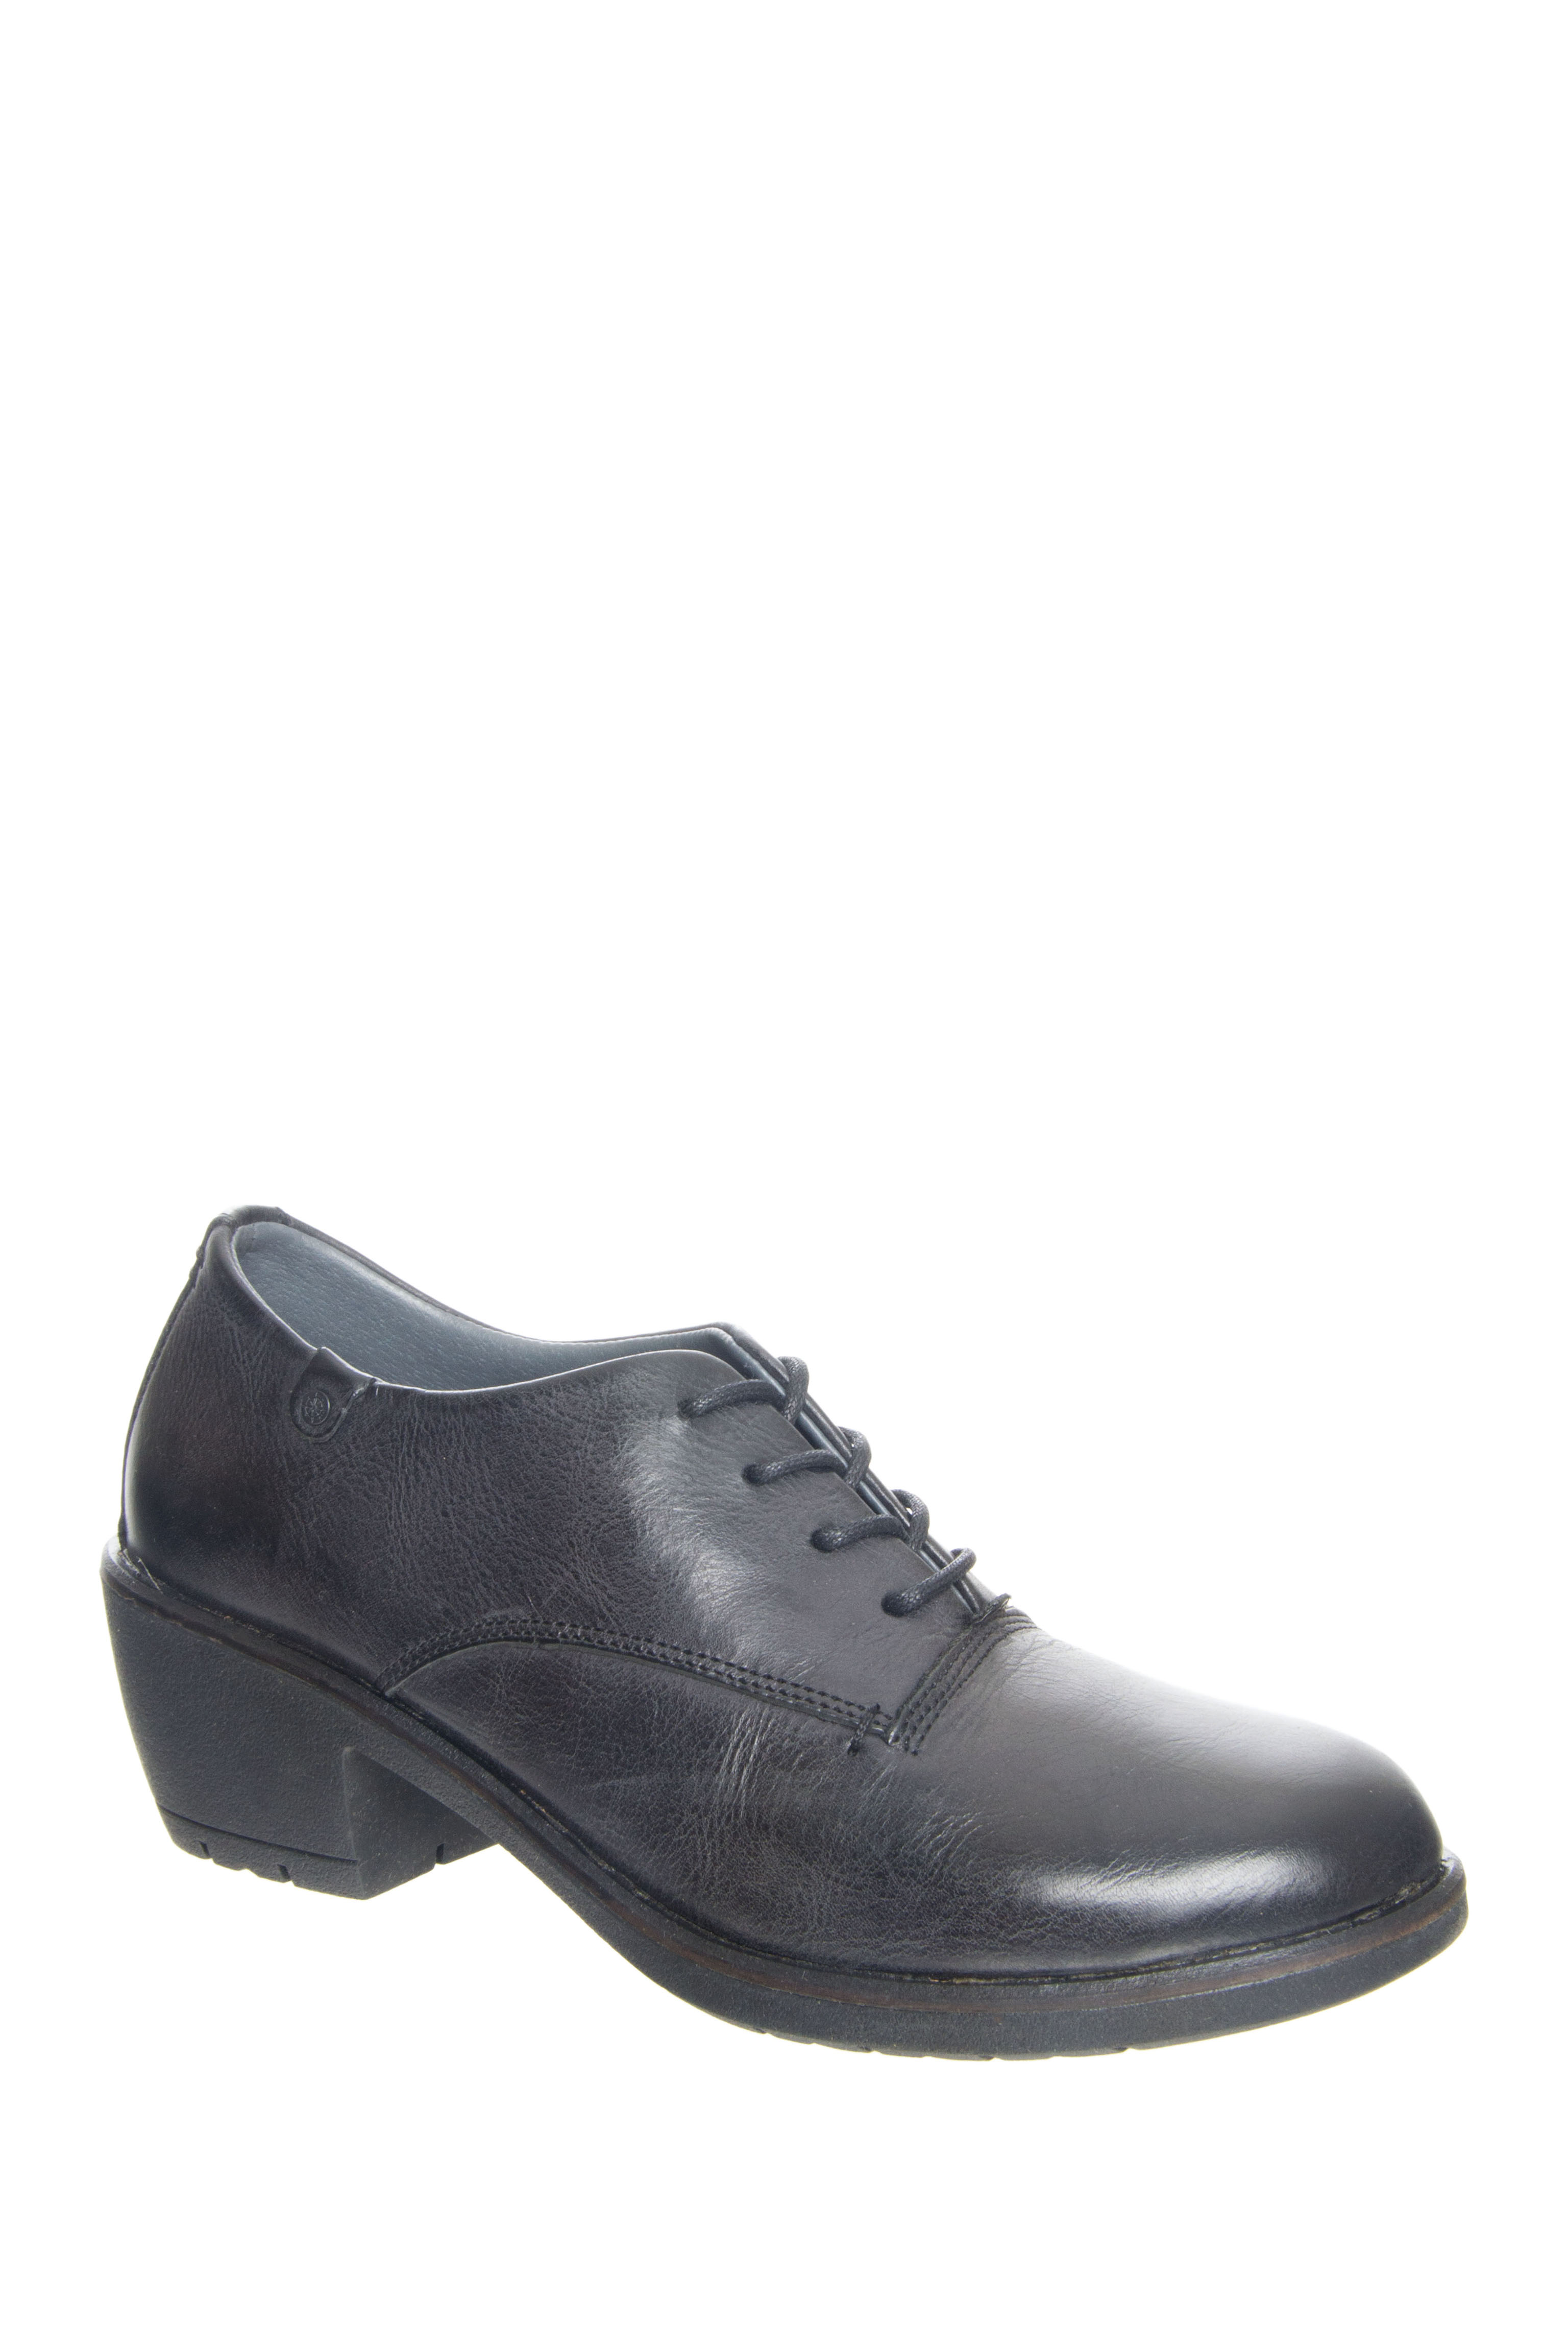 Bussola Shay Mid Heel Oxford - Black